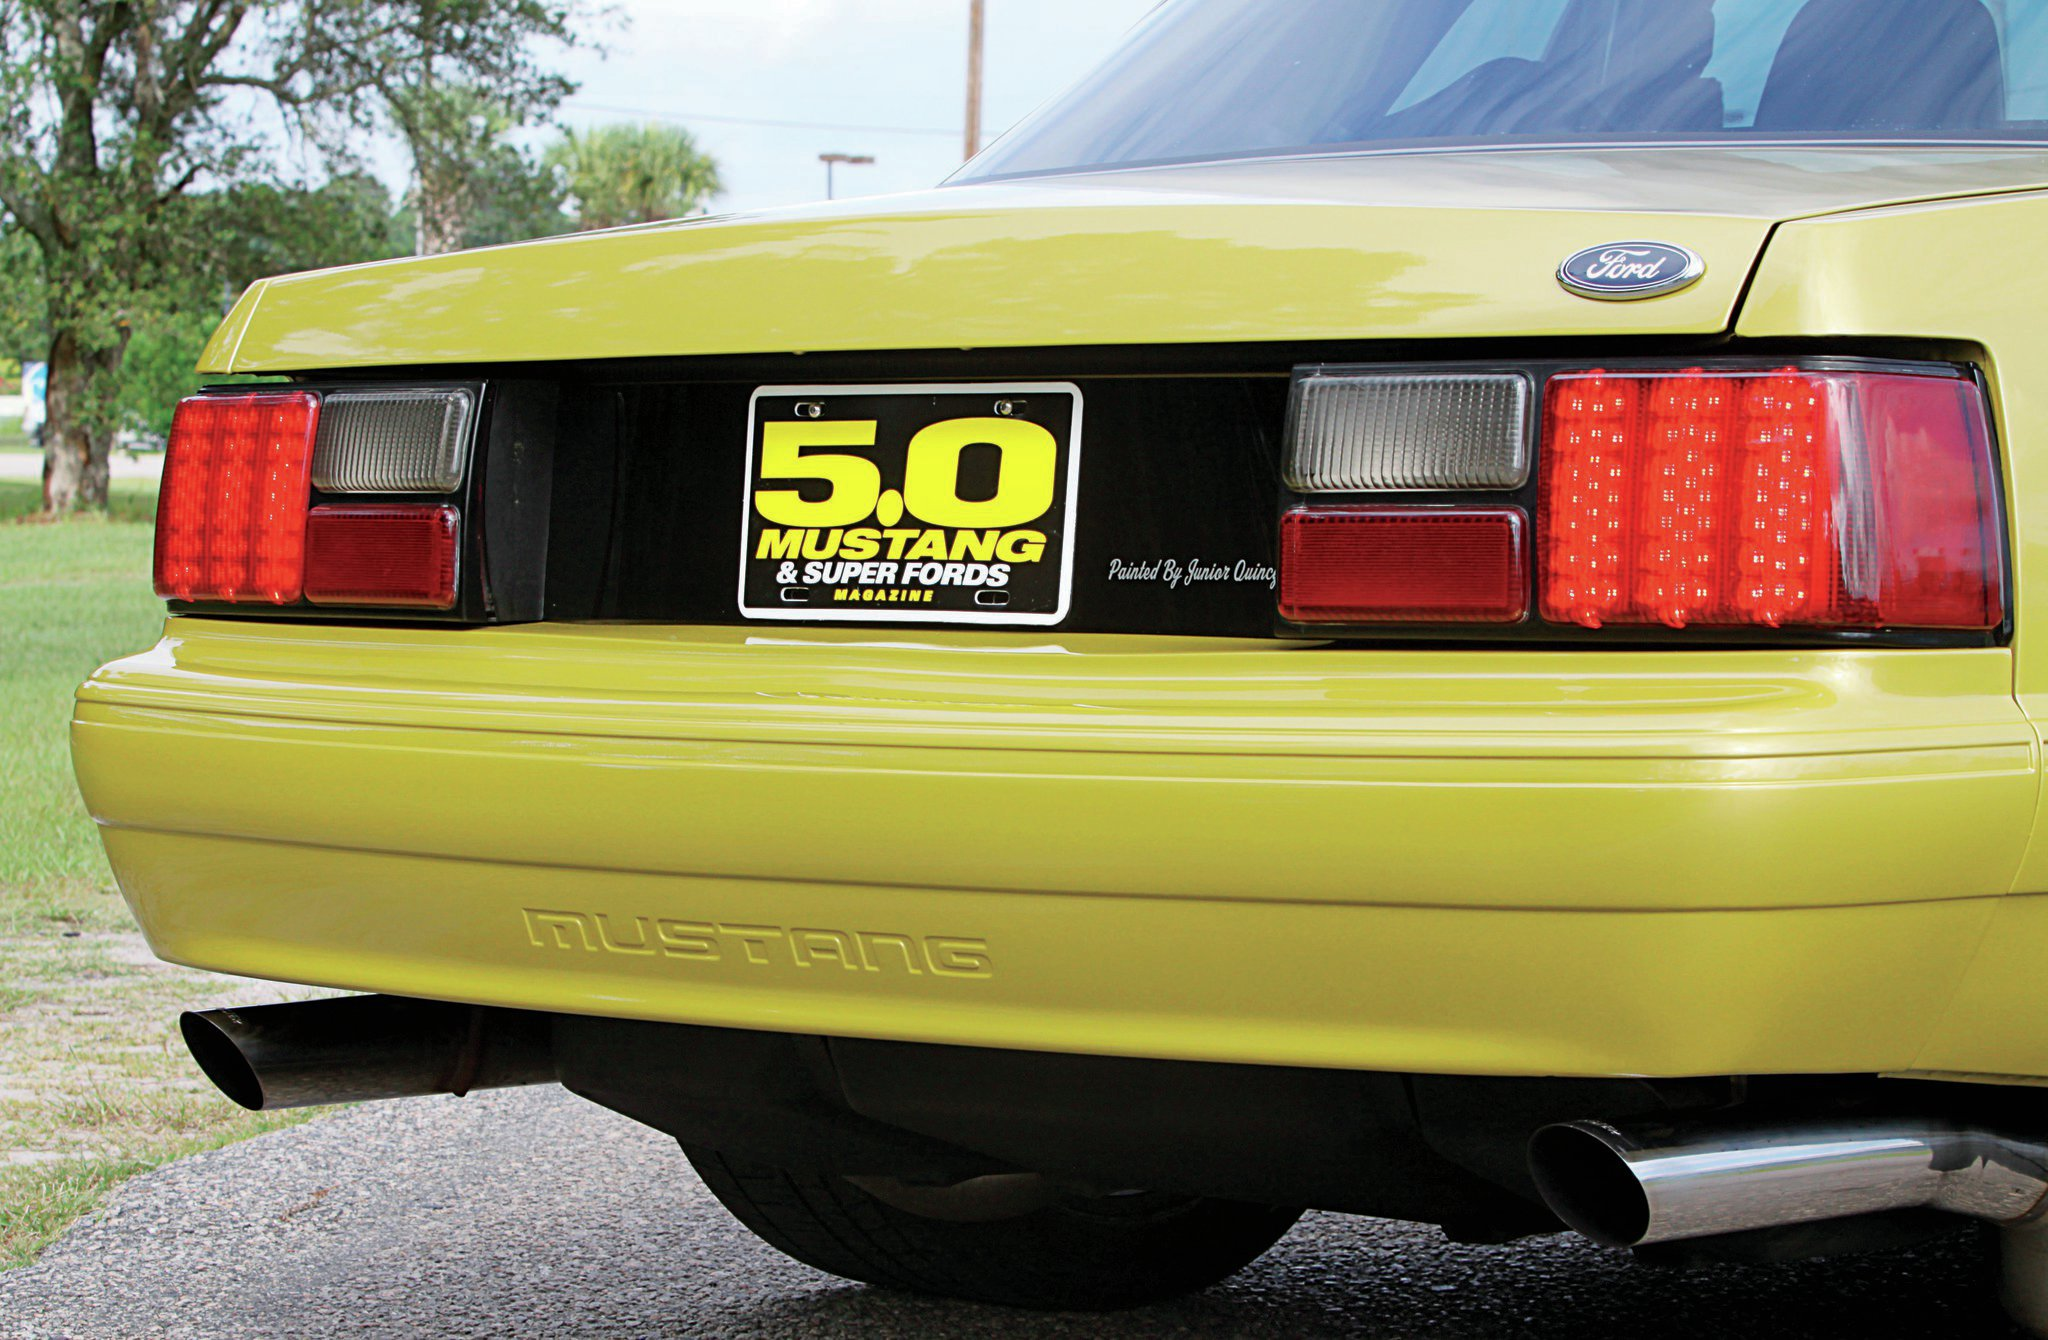 1987 Ford Mustang Lx Coupe Taillights